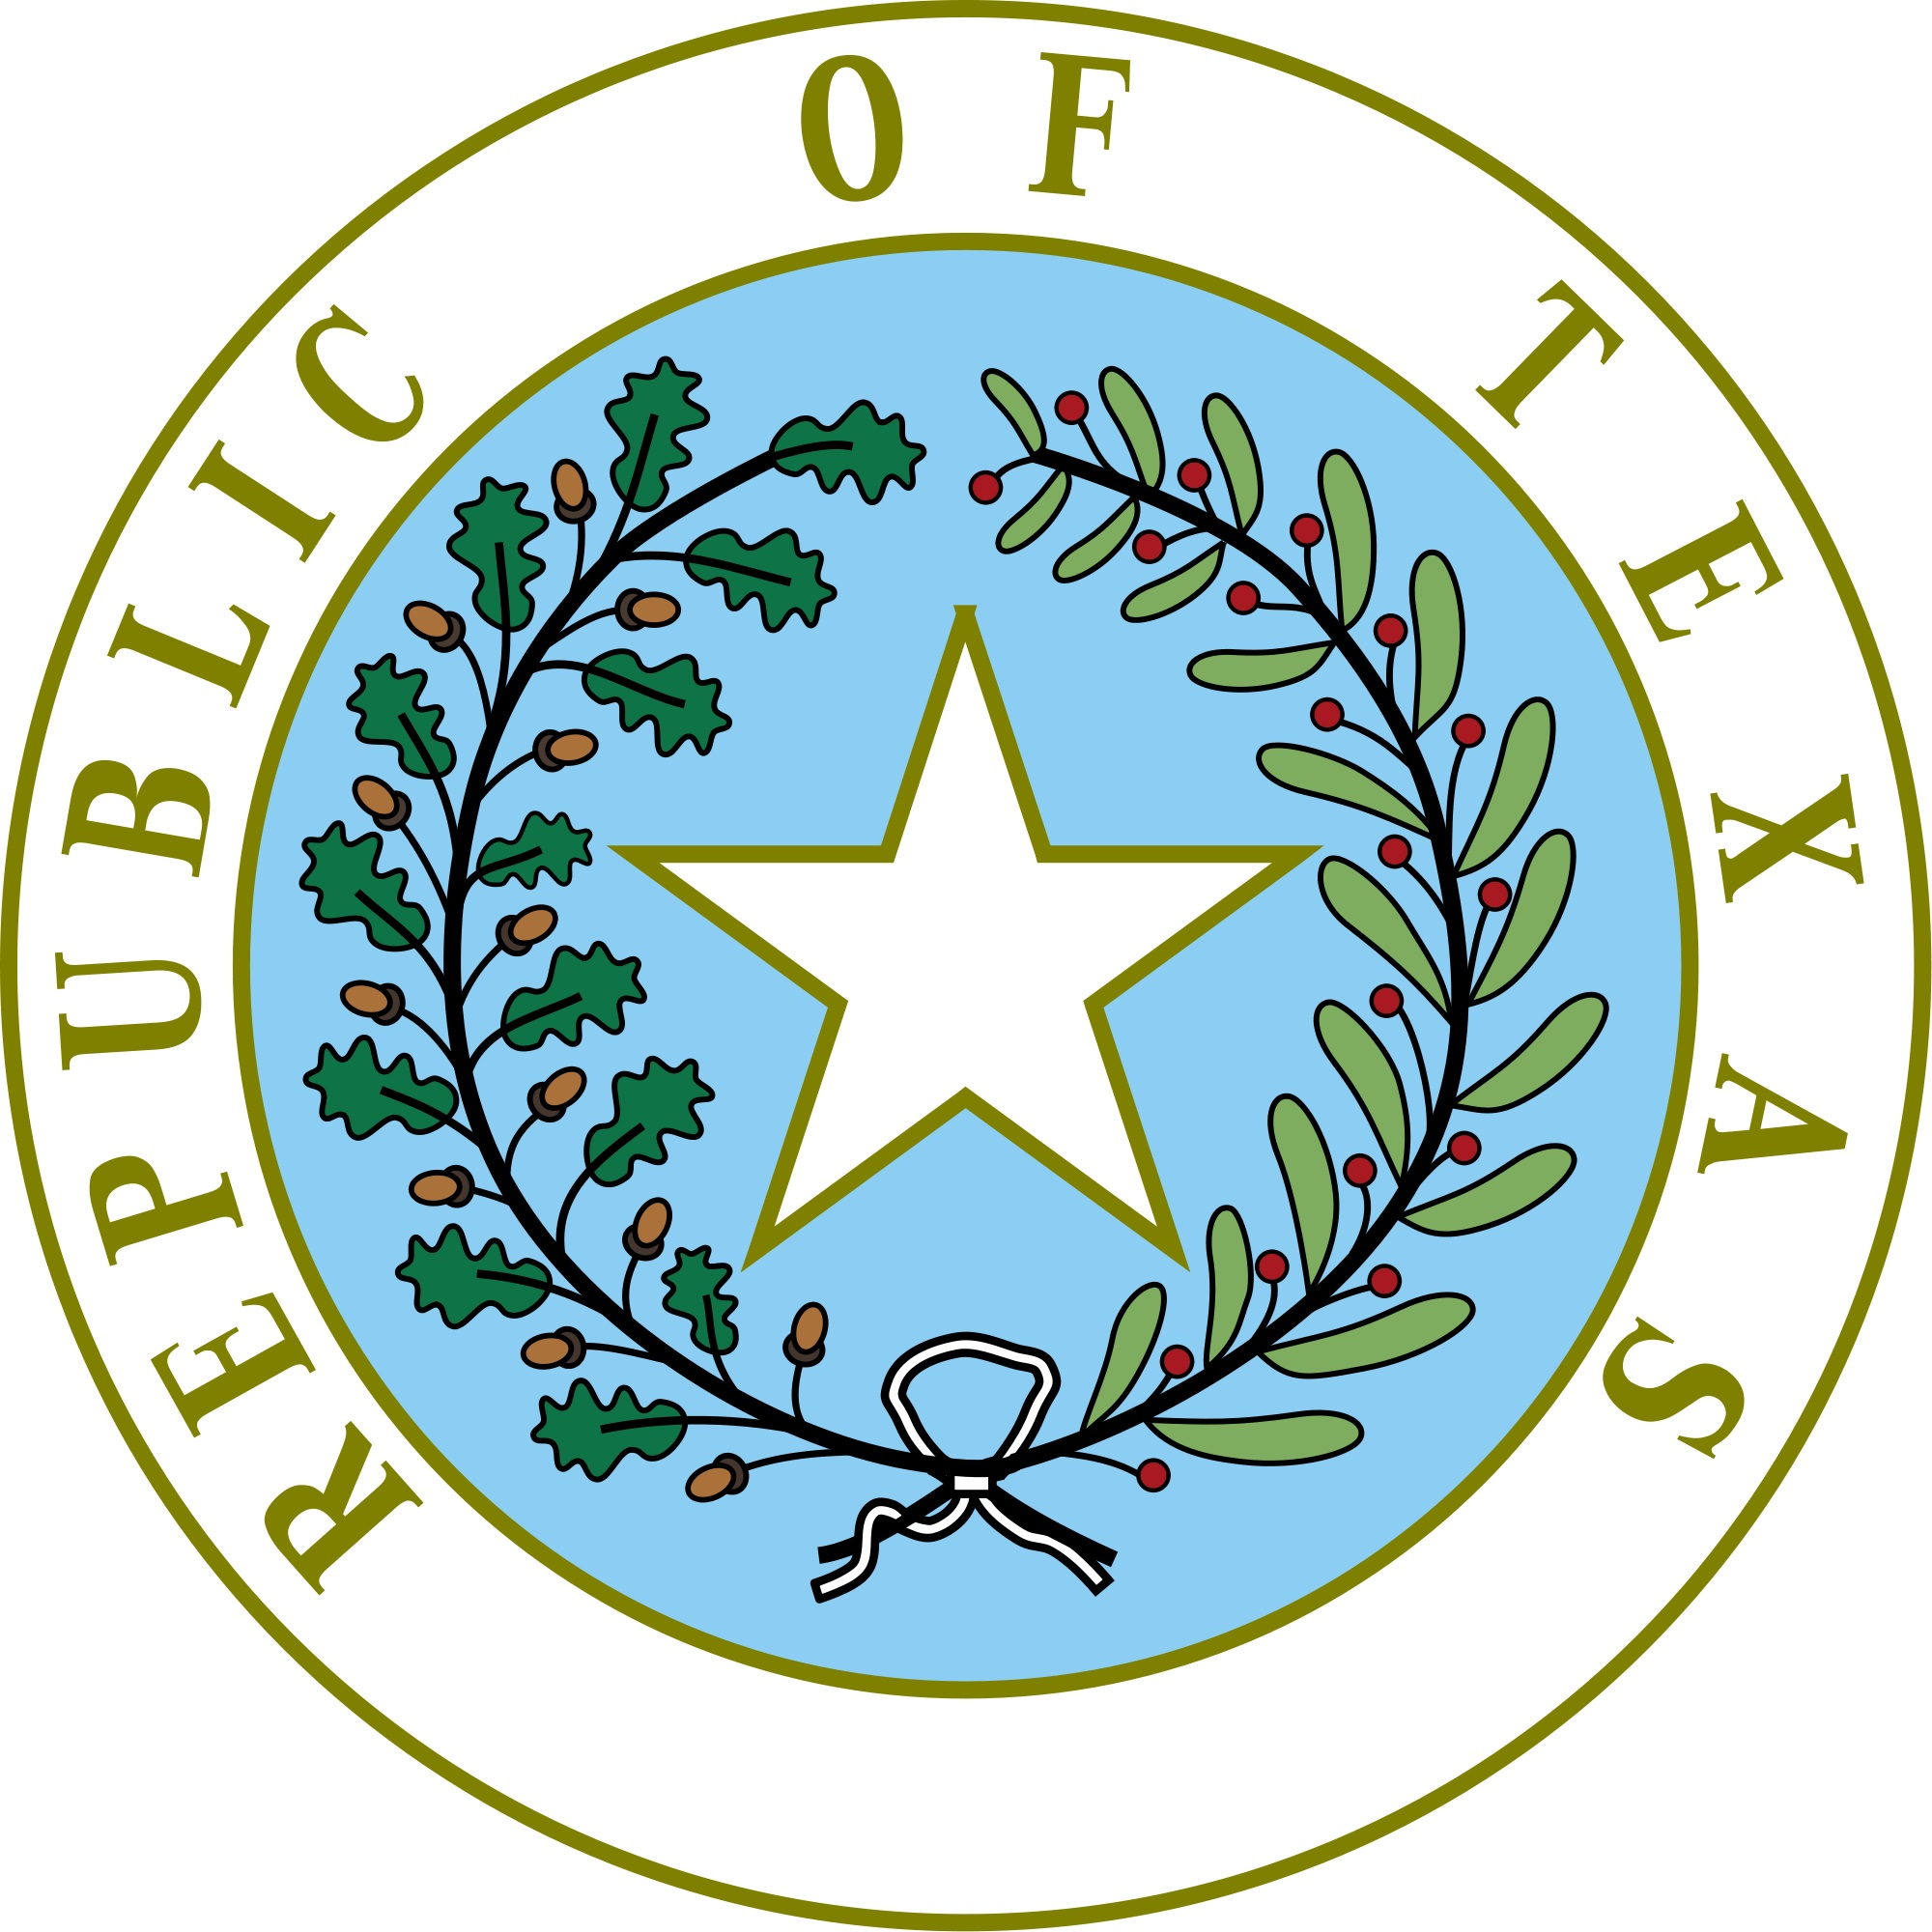 2000x2000 Republic Of Texas The Handbook Of Texas Online Texas State